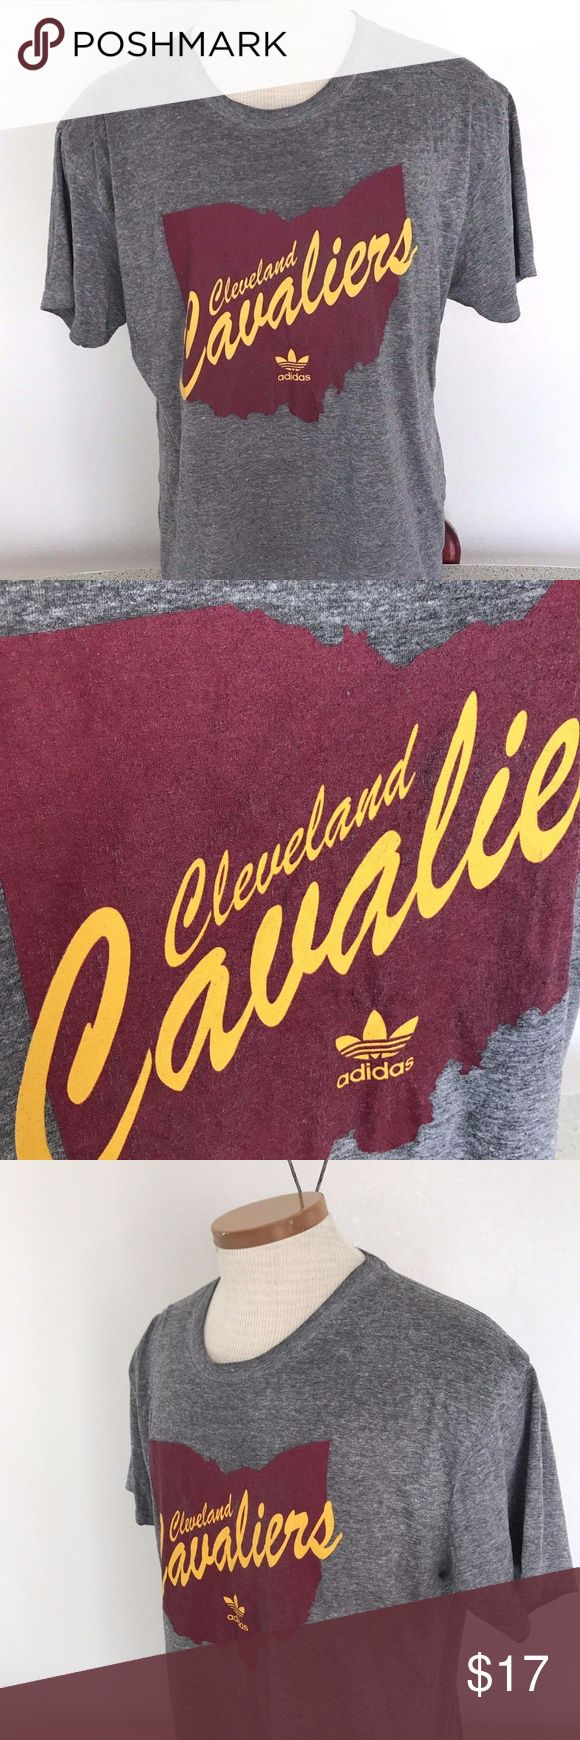 """Cleveland Cavaliers Adidas Men's XL T-Shirt Cleveland Cavaliers Adidas Men's T-Shirt Gray Short Sleeve Top Size XL. Some wear on the label. No Rips, Stains or holes. Smoke Free Home. Approximate Measurements:  Length: 27"""" inches Chest (laying Flat underarm to underarm) : 22"""" inches adidas Shirts Tees - Short Sleeve"""